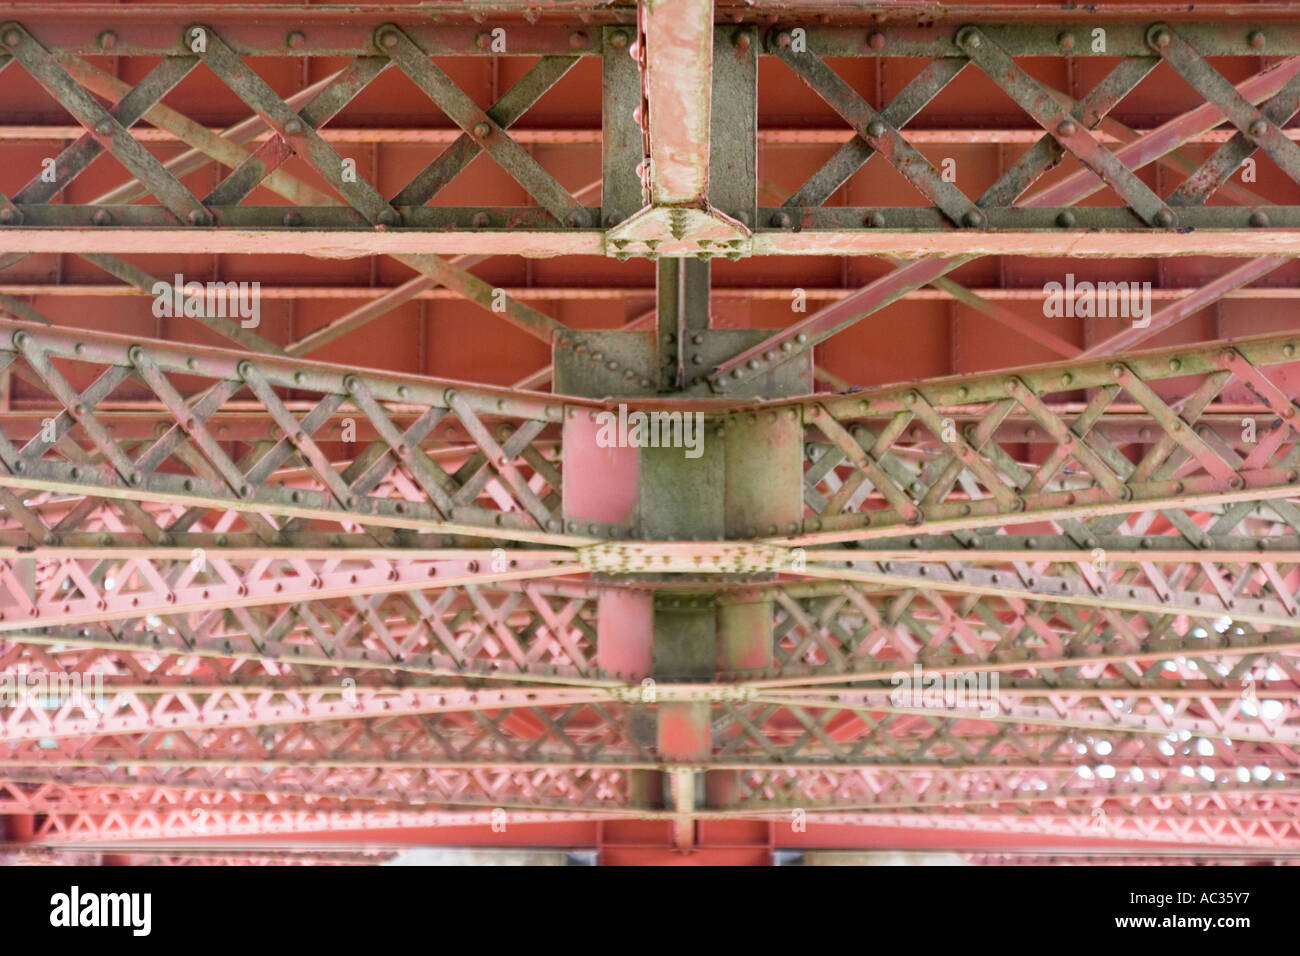 Structural support detail under the approach to the Golden Gate Bridge San Francisco California Stock Photo